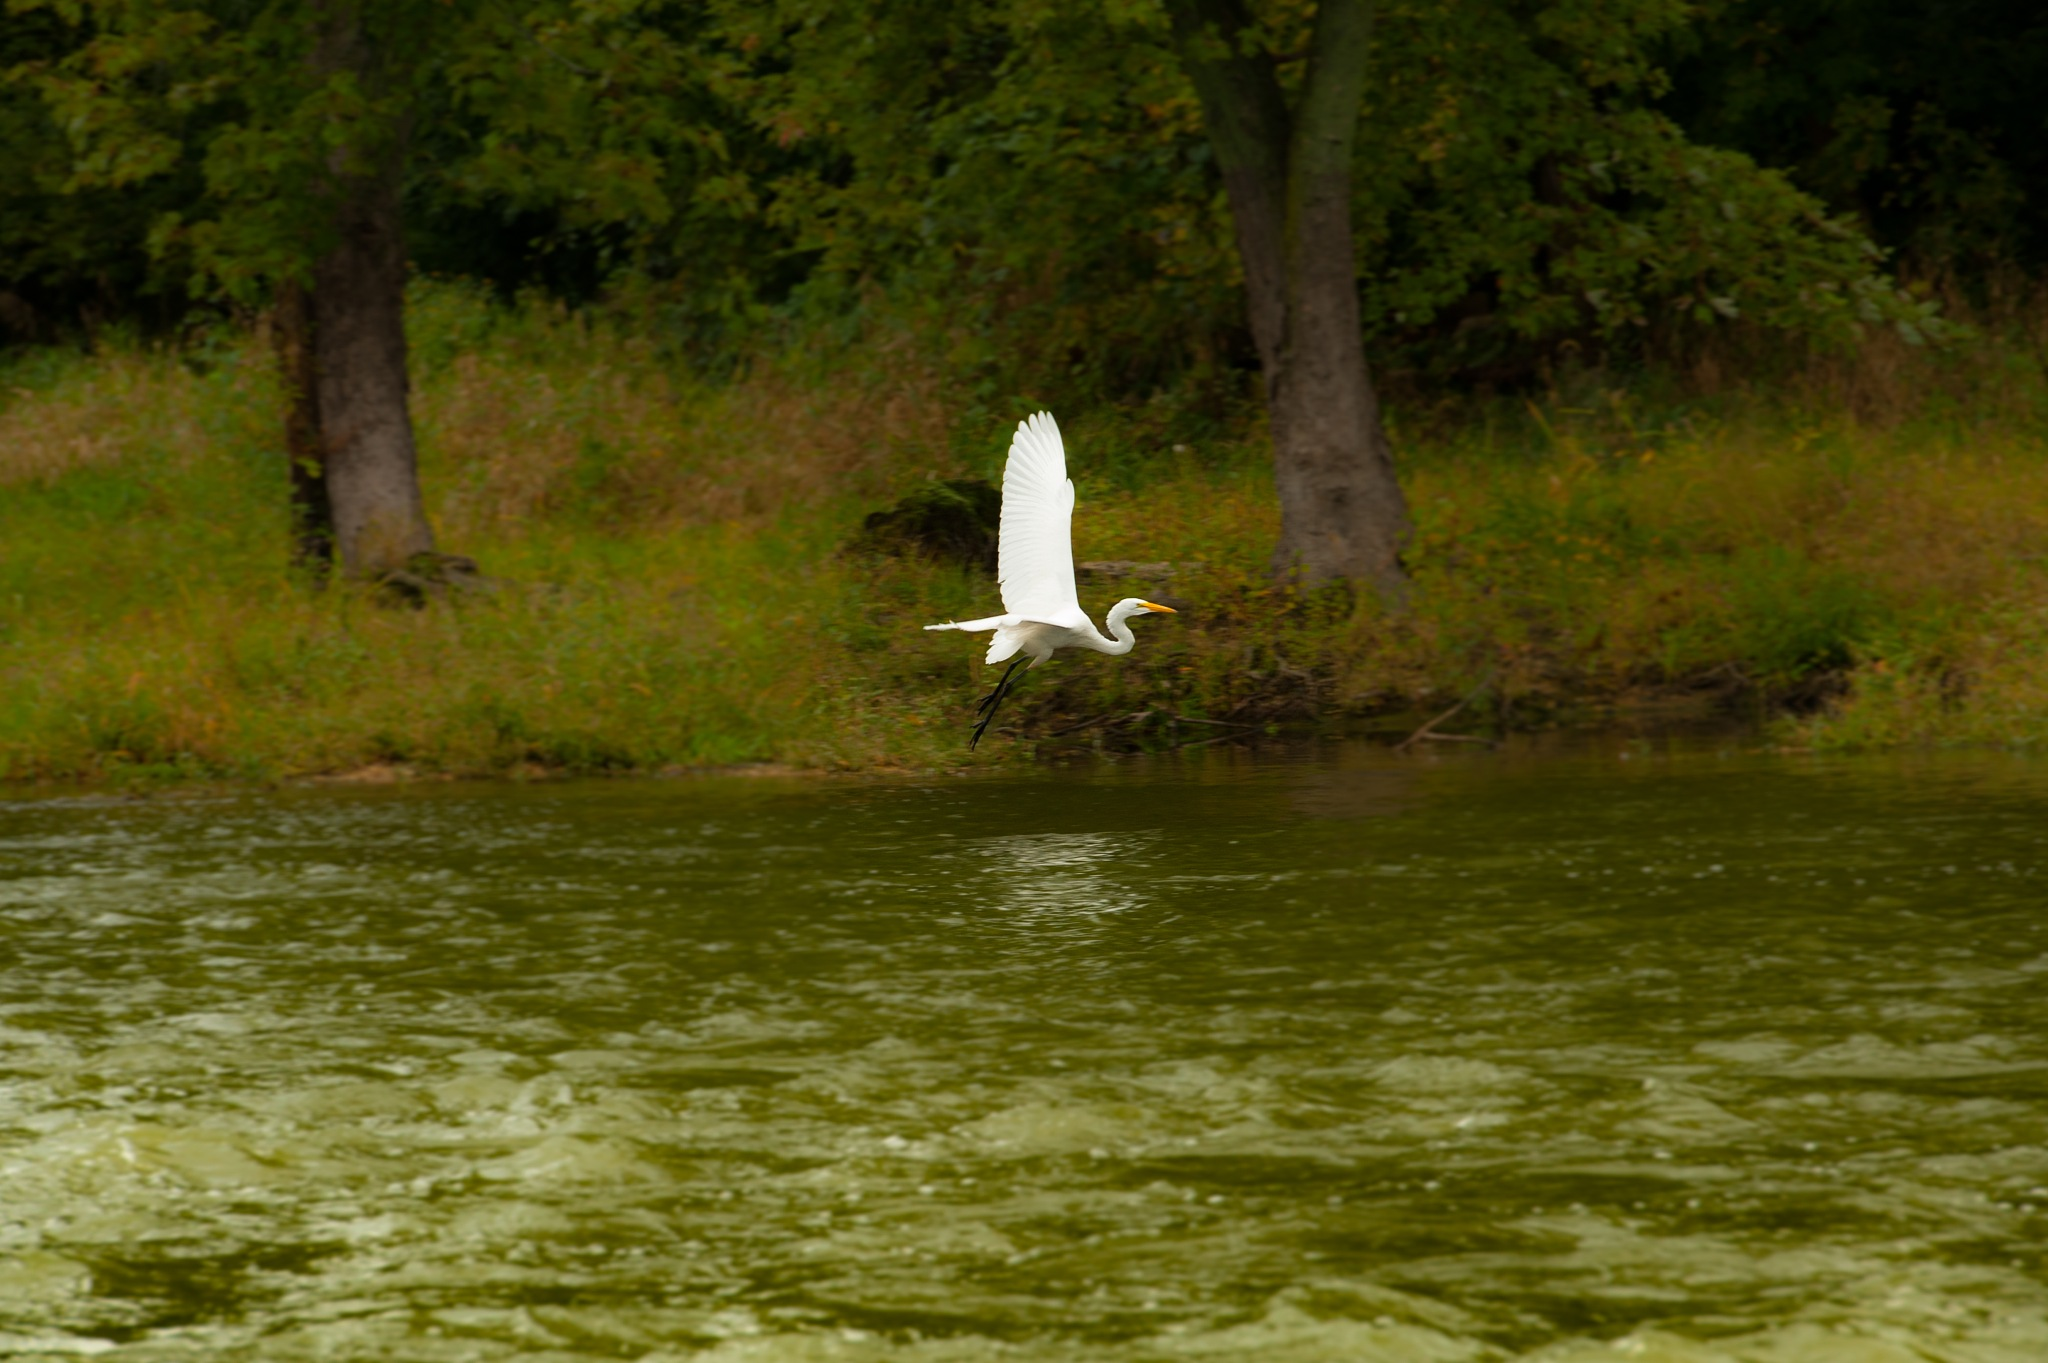 No Egrets by mgrphotography